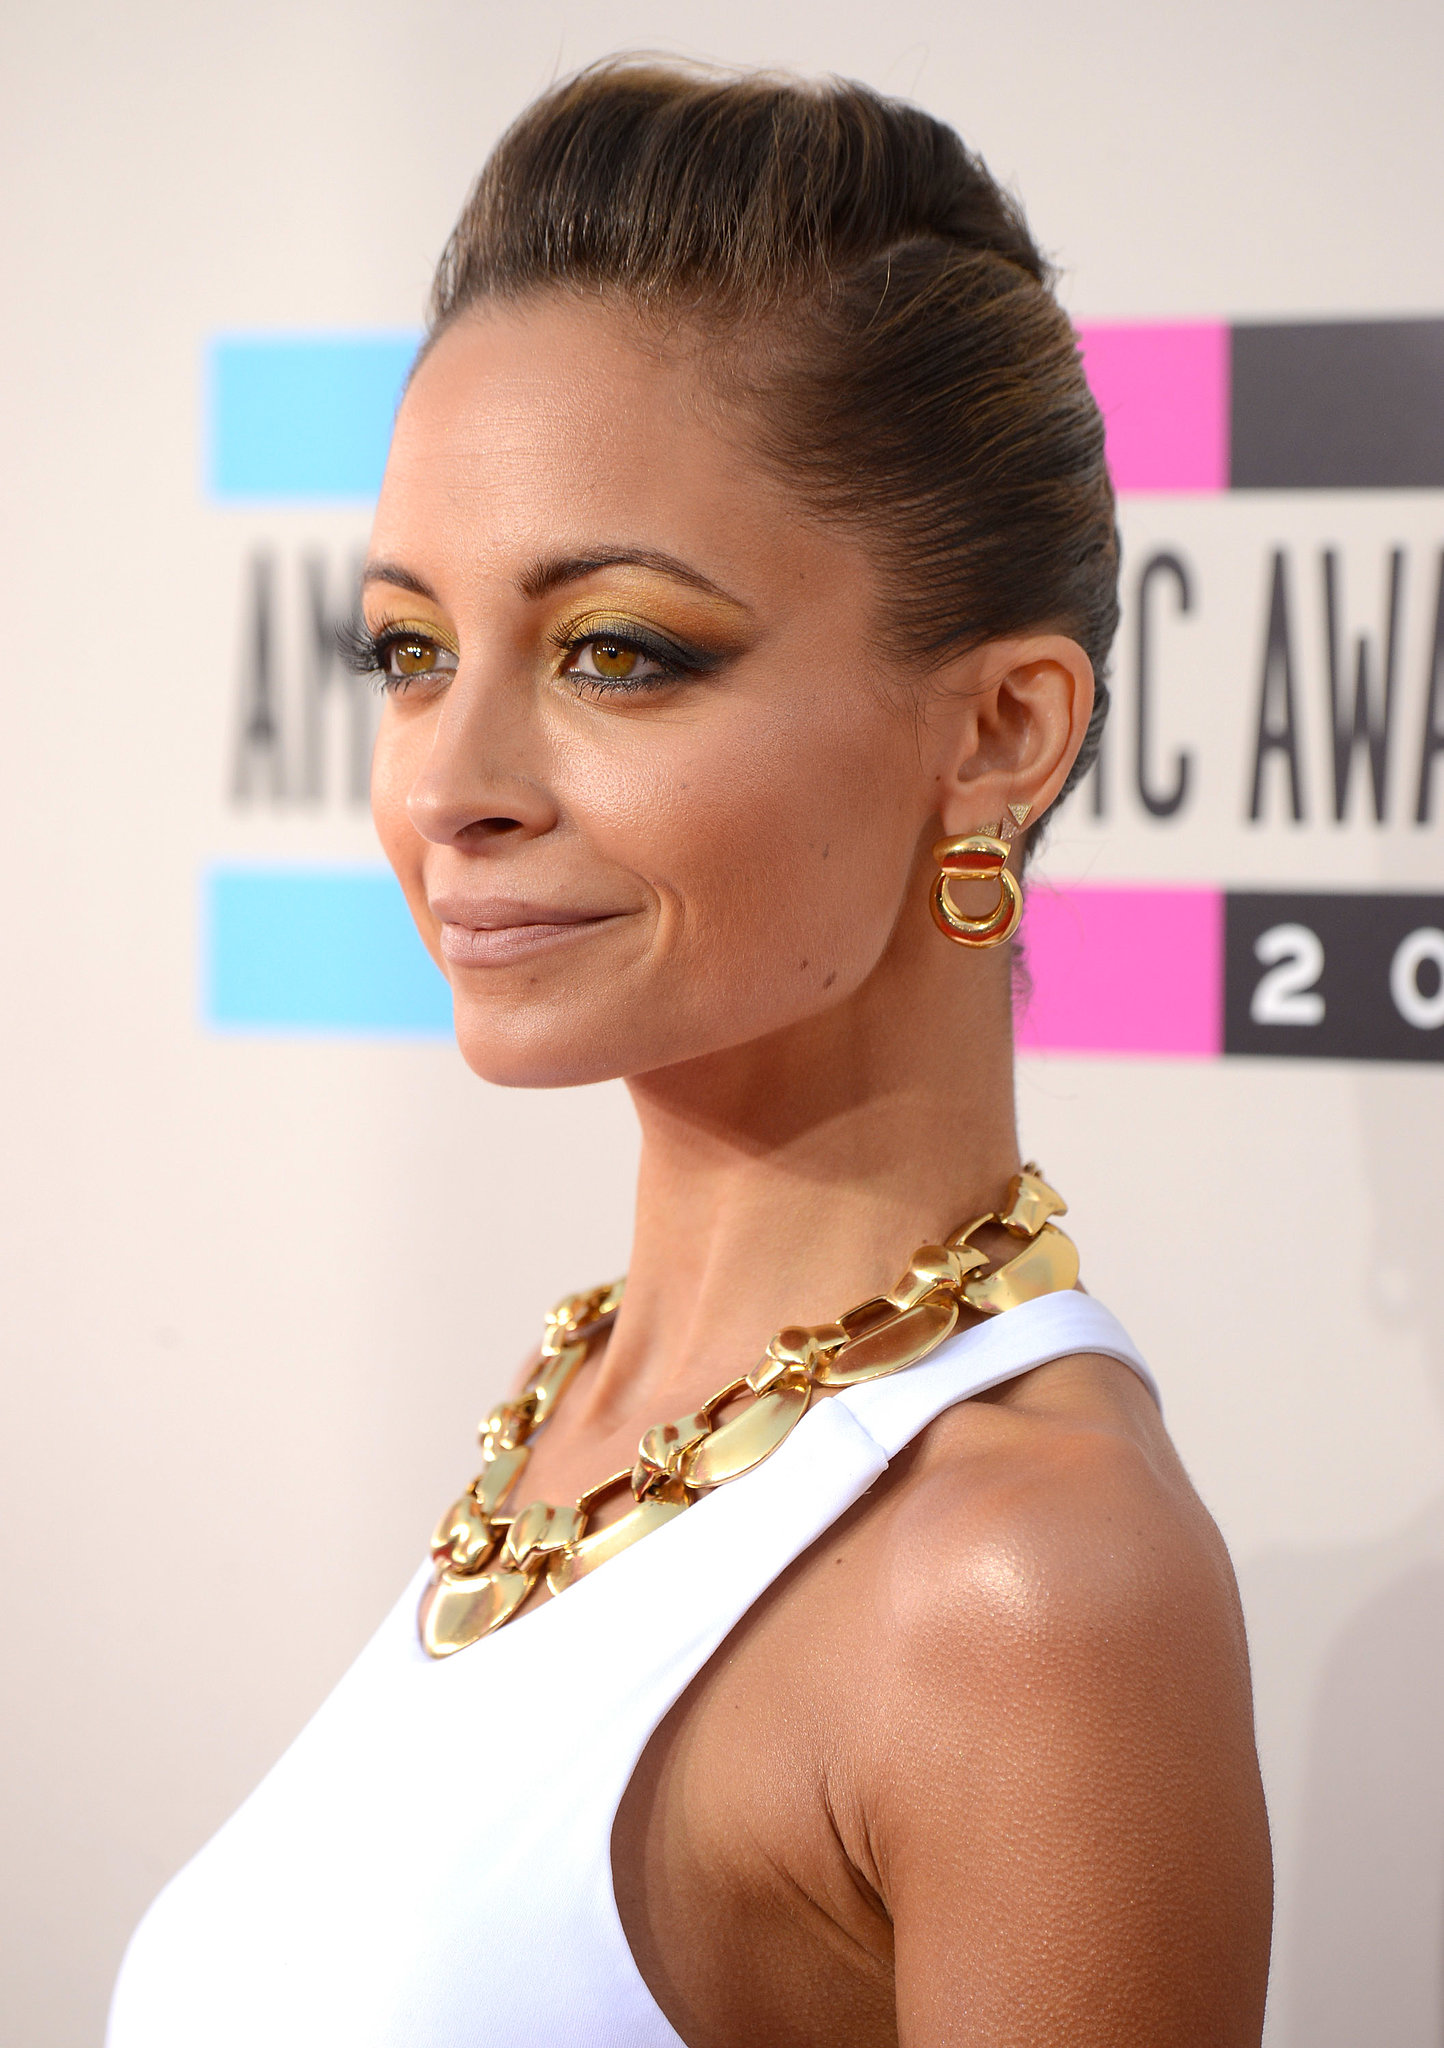 Nicole Richie : The Best American Music Awards Beauty Looks From Every ...